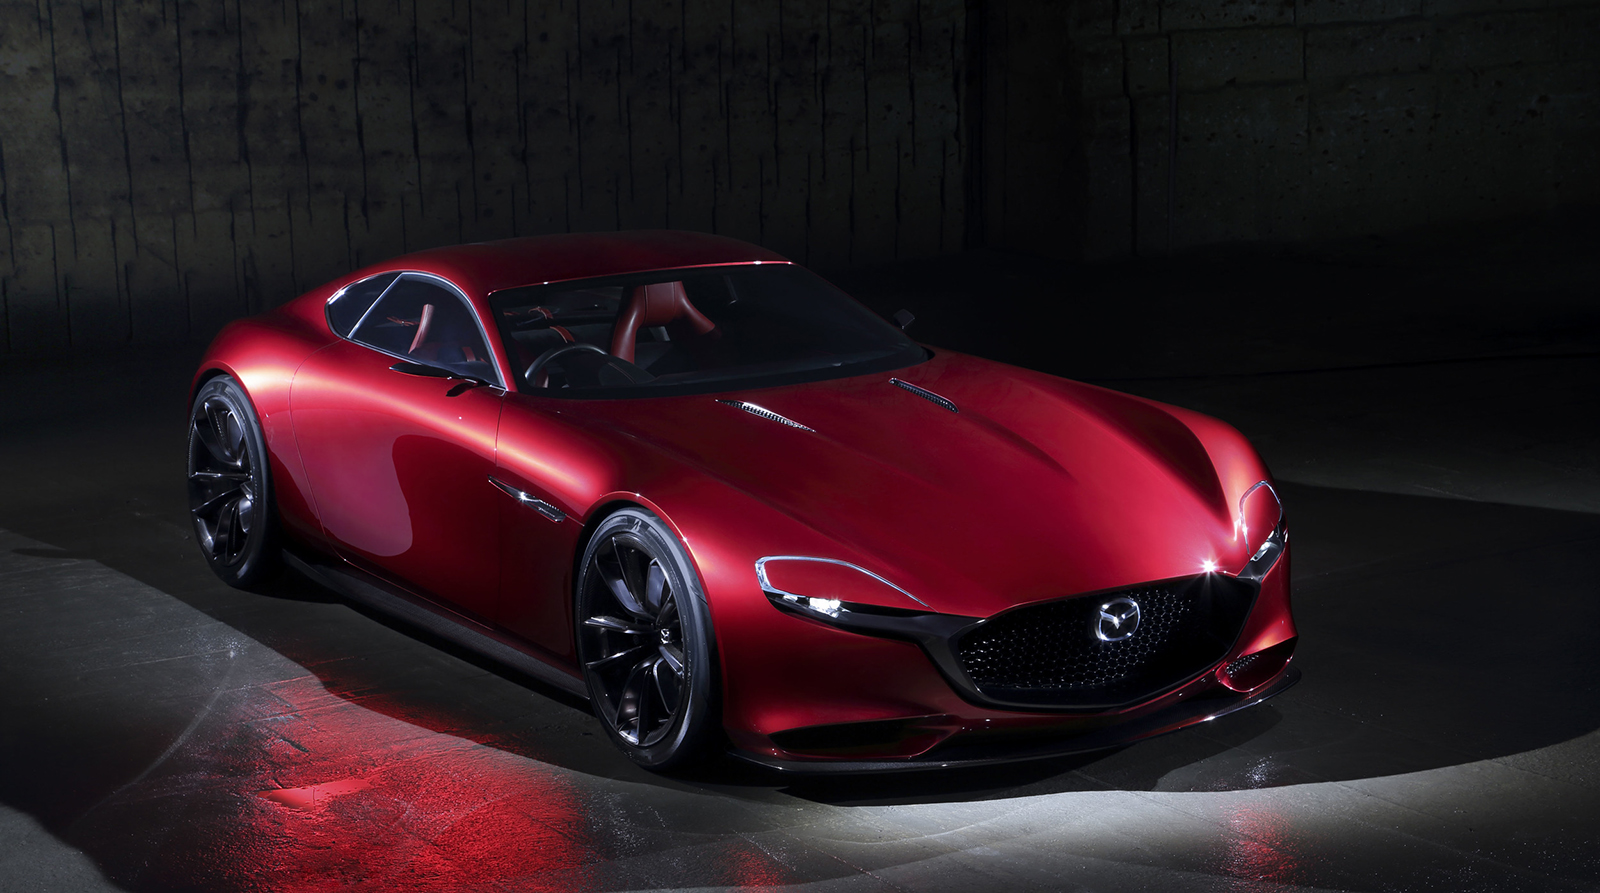 Gorgeous Mazda RX-Vision Rotary-Powered Concept Harkens Back To Legendary FD RX-7